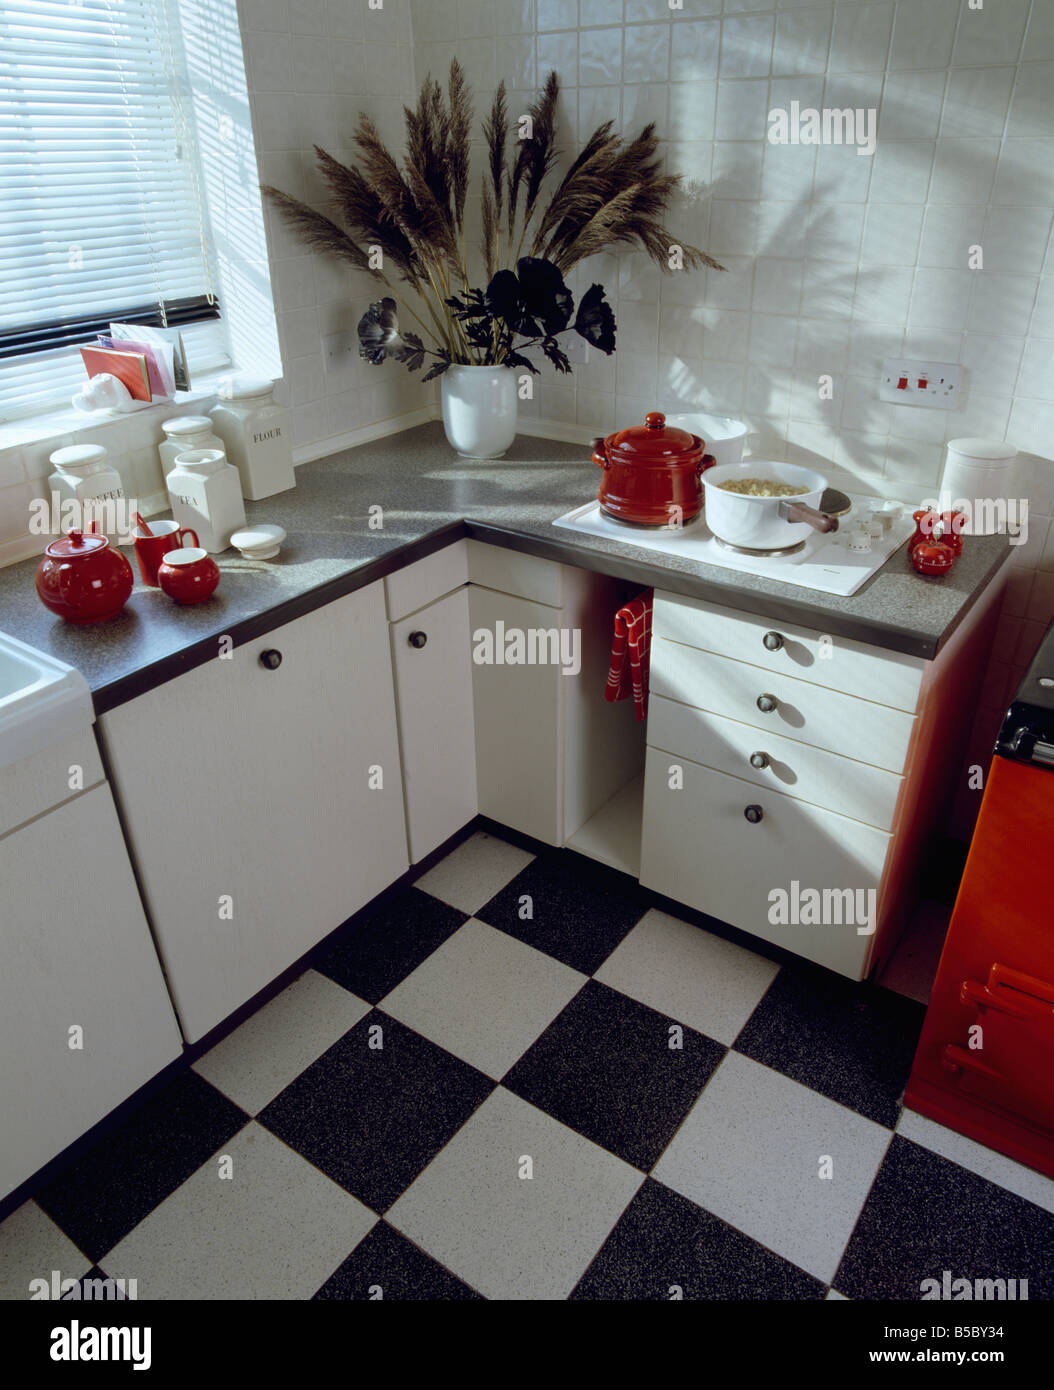 Vinyl Flooring Kitchens Black White Chequerboard Vinyl Flooring In White Country